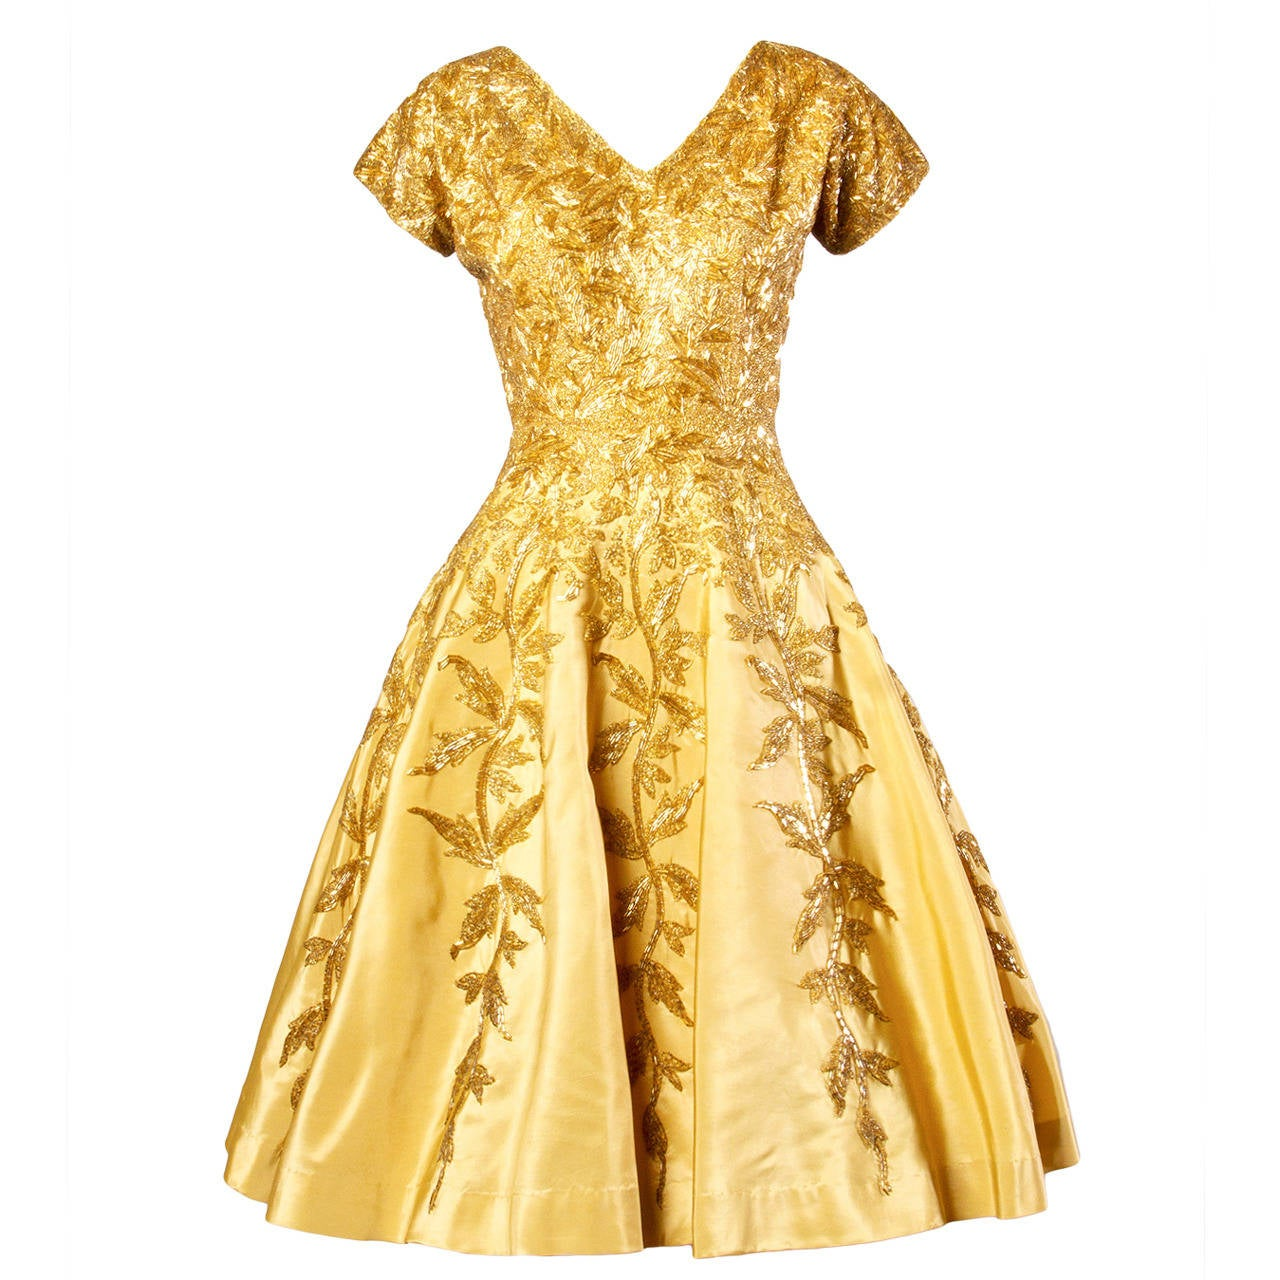 Vintage 1950s 50s Gold Yellow Hand-Beaded Couture Silk Cocktail Dress For Sale